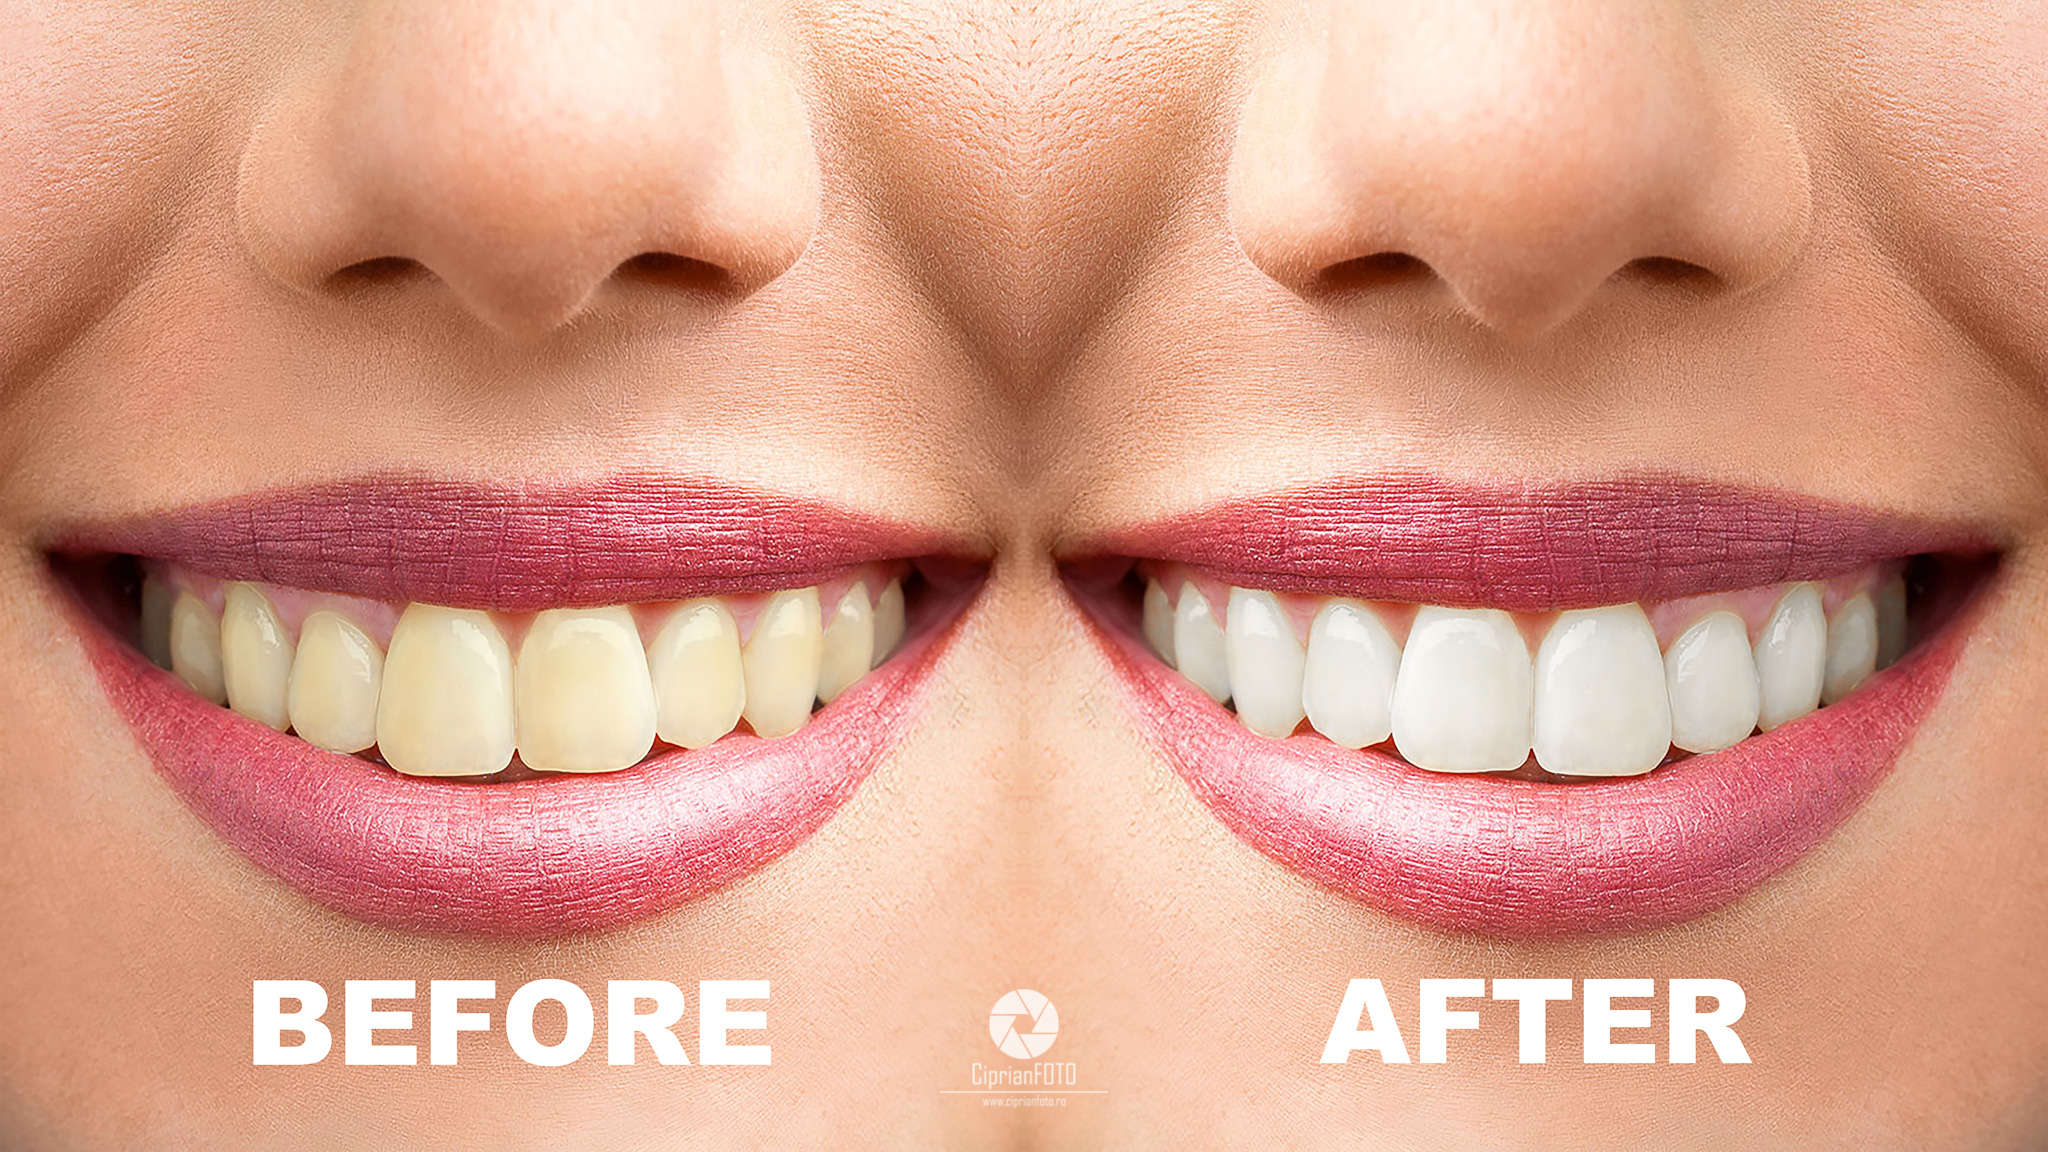 whiten teeth in photoshop, photoshop tutorials, CiprianFOTO